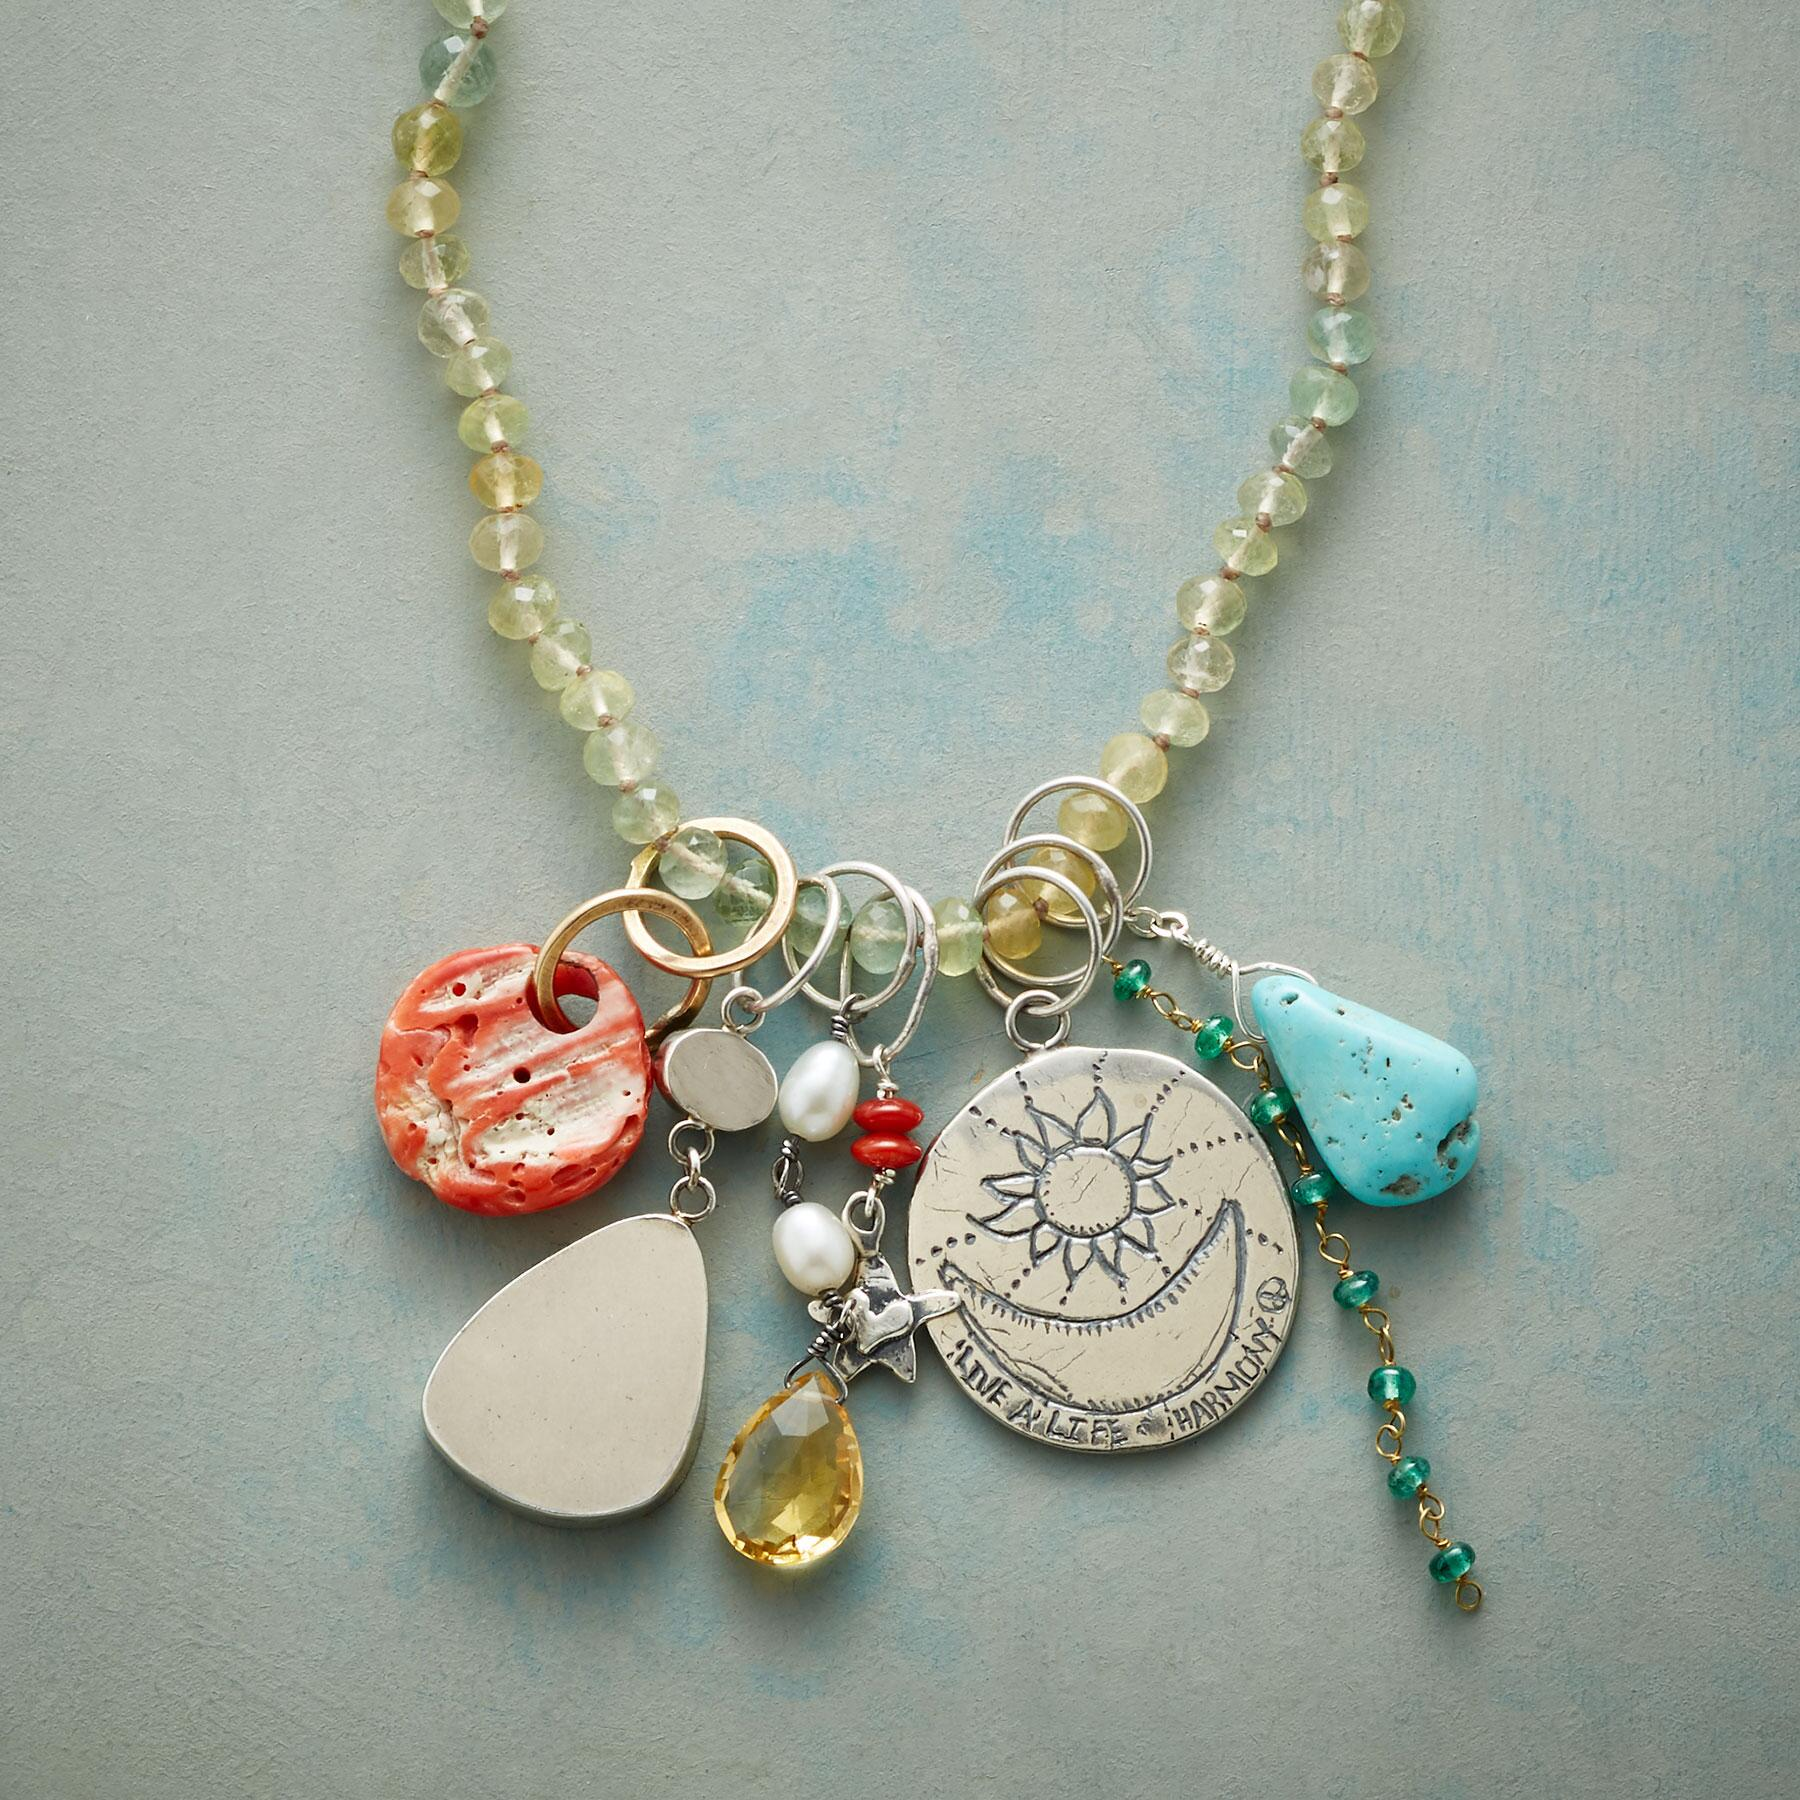 NATURES BOUNTY NECKLACE: View 3